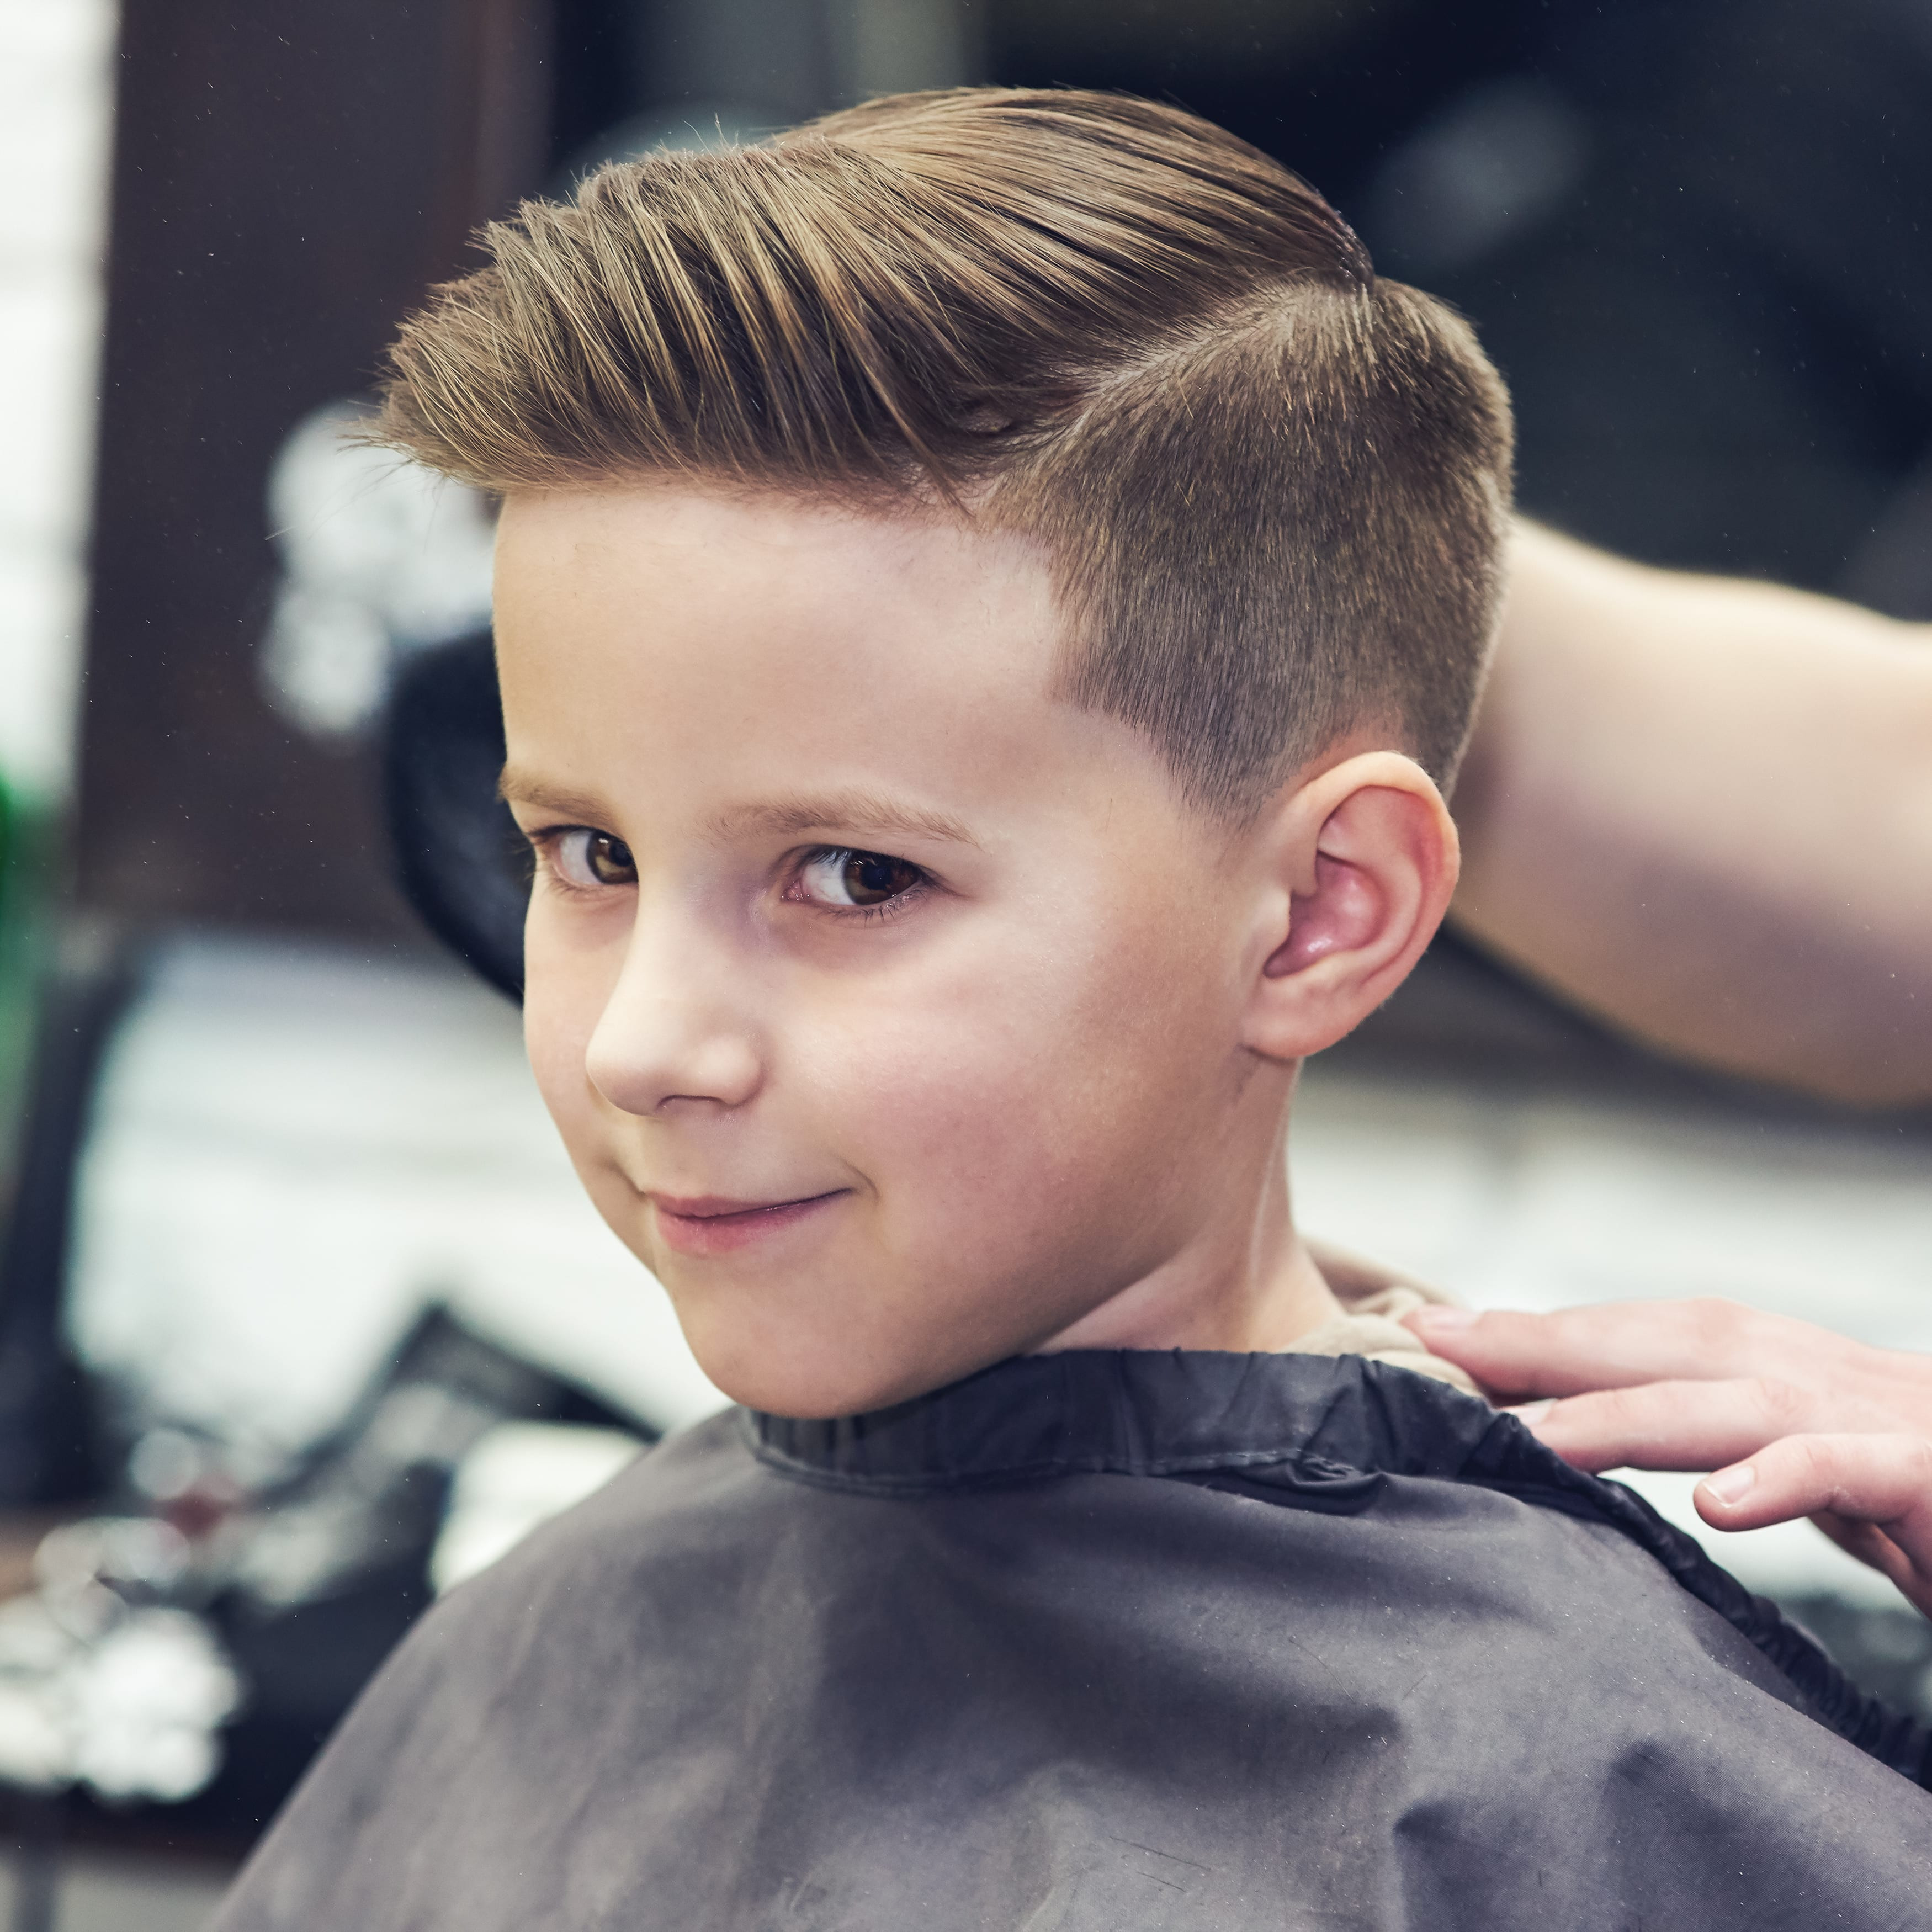 Best ideas about Hairstyles Boys . Save or Pin 50 Cool Haircuts for Kids for 2019 Now.